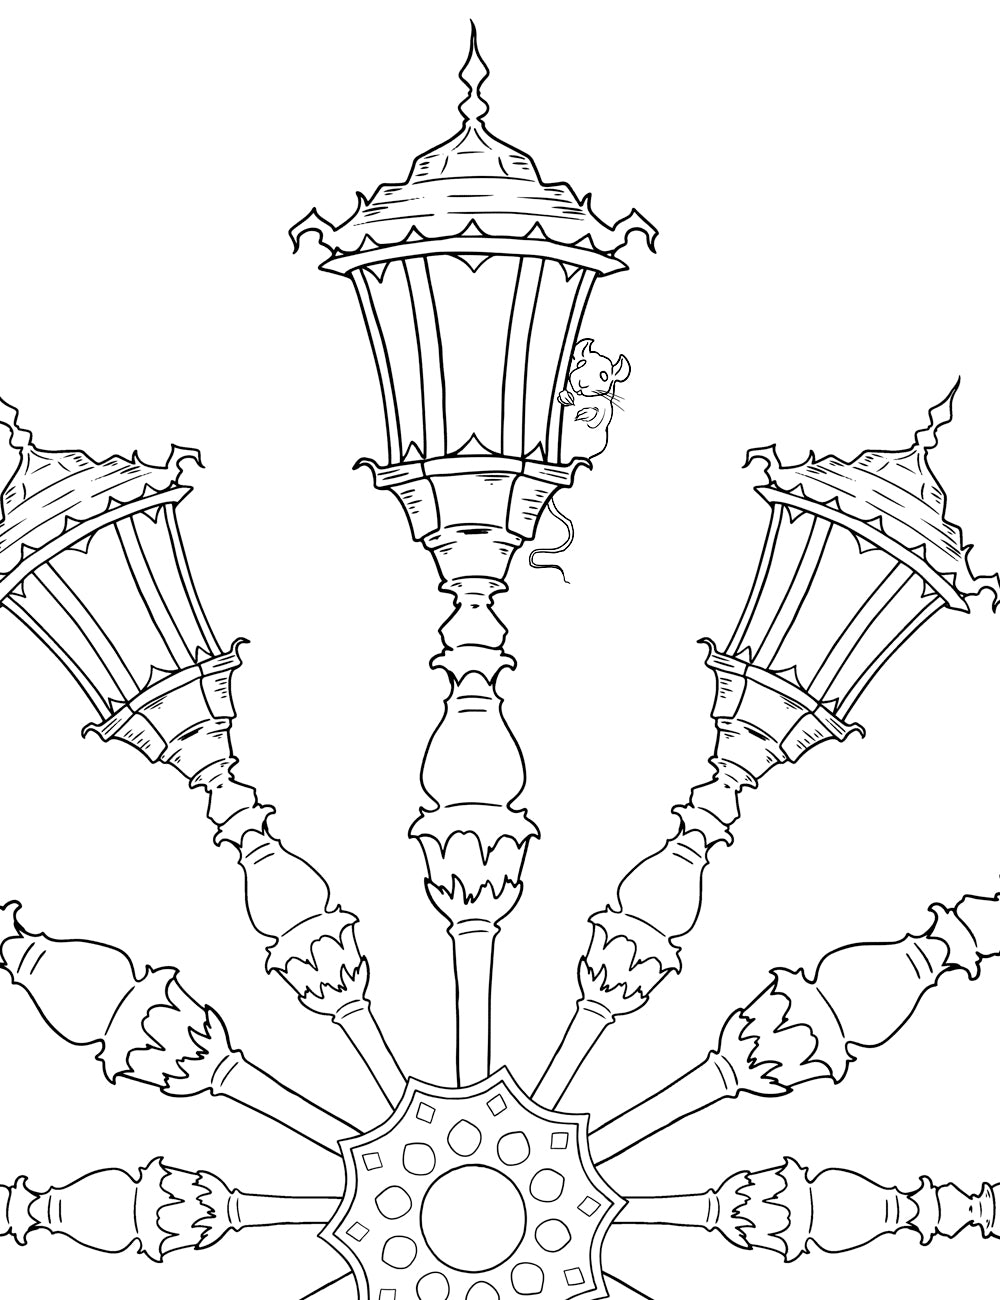 Asylum Coloring Book Page: Lanterns